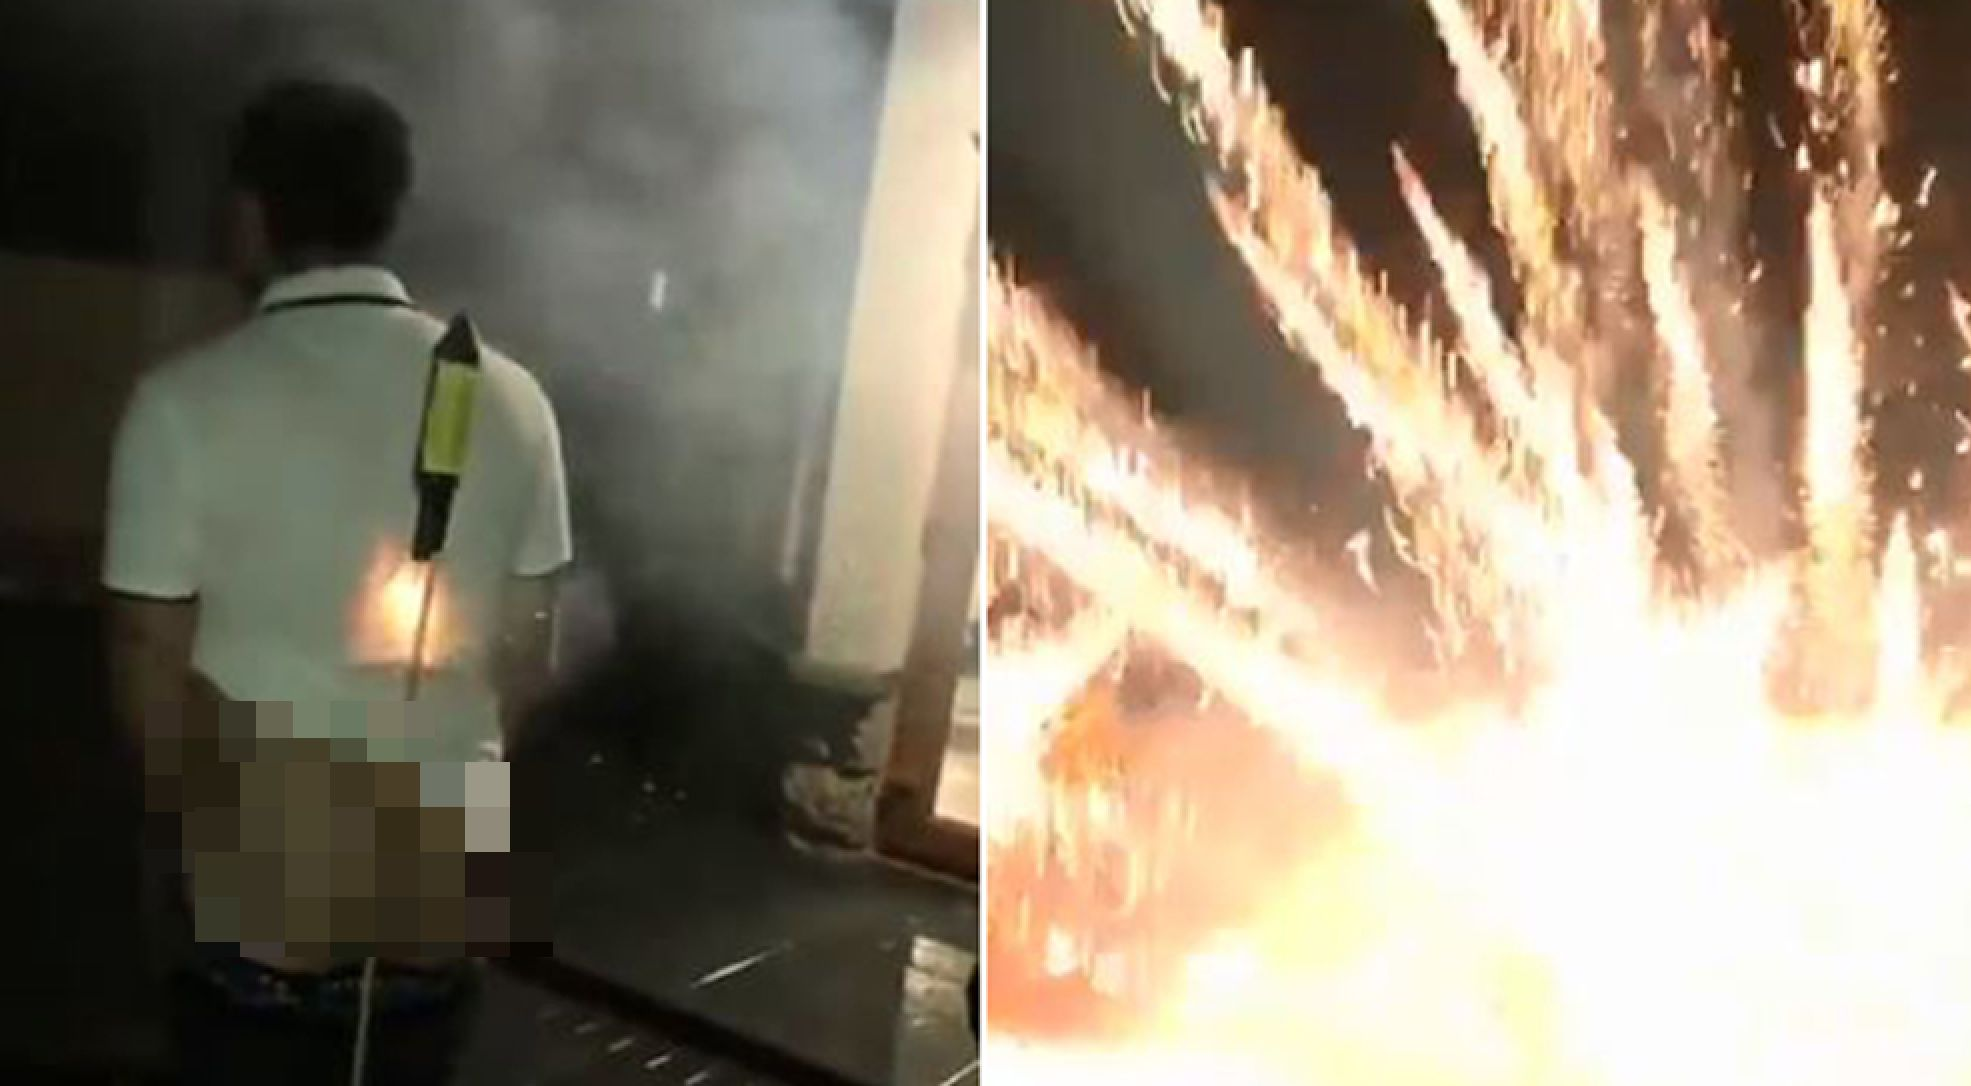 Bloke tries to shoot fireworks from his bum cheeks; regrets it